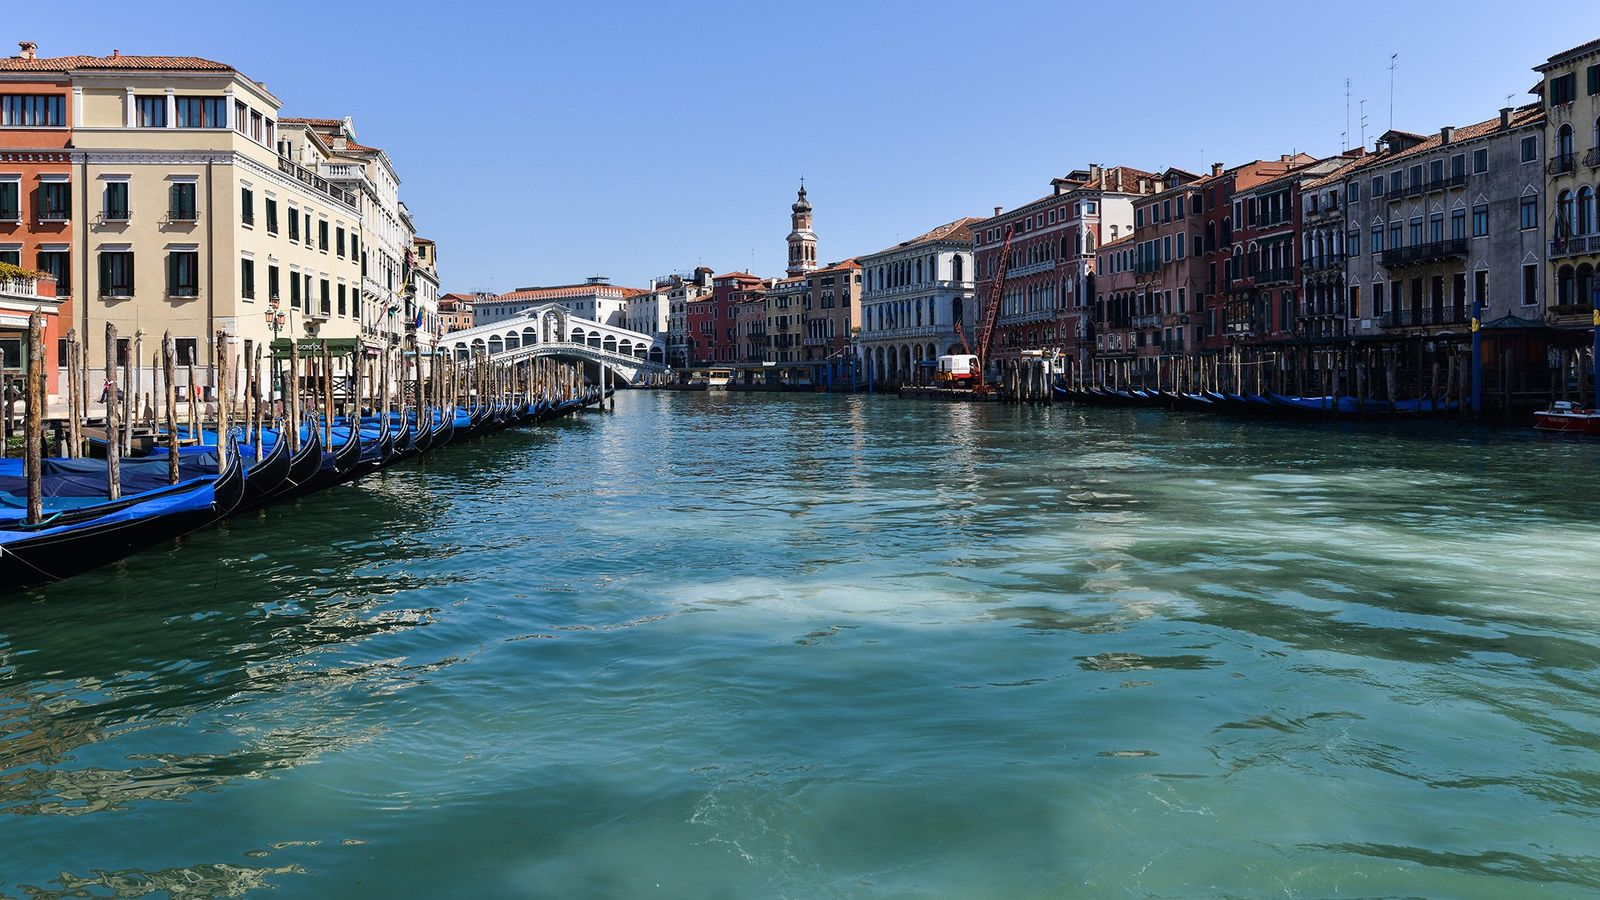 As the normally bustling canals of Venice became deserted amid pandemic quarantines, viral social media posts ...